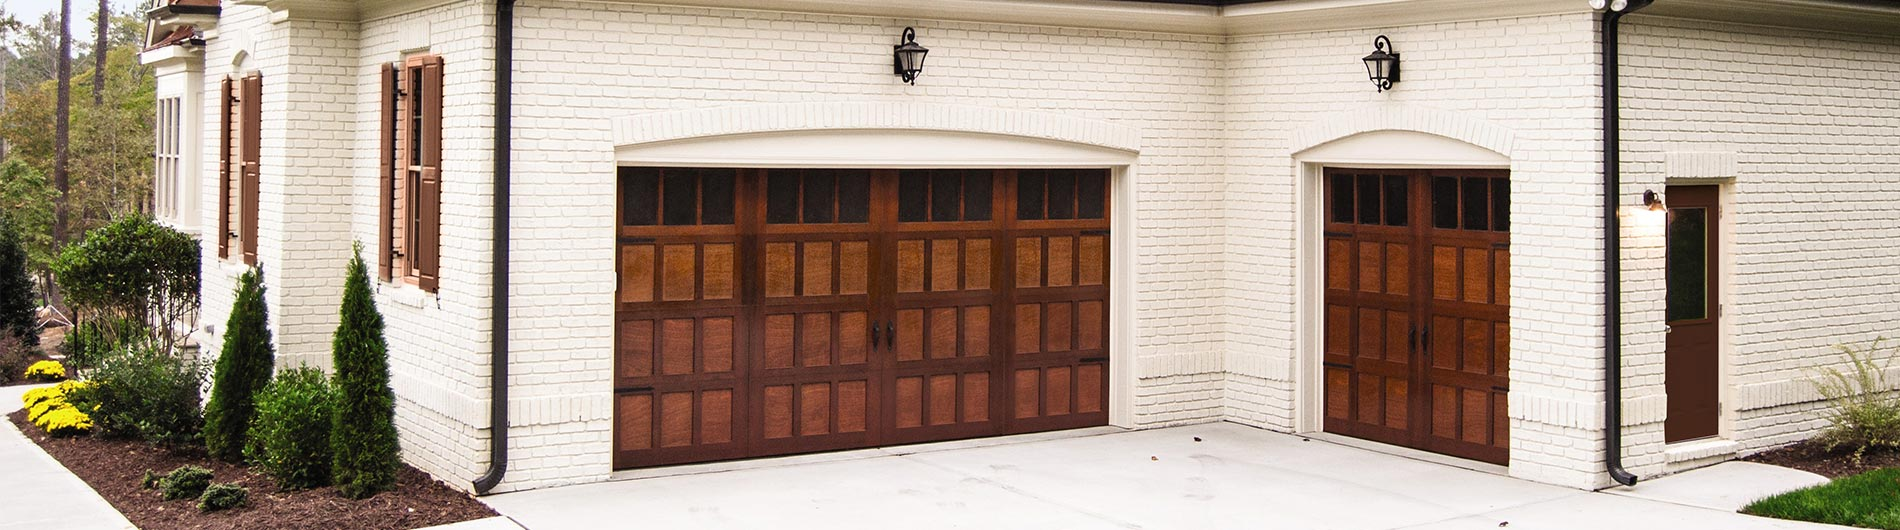 Wood Garage Doors 7104 palomino